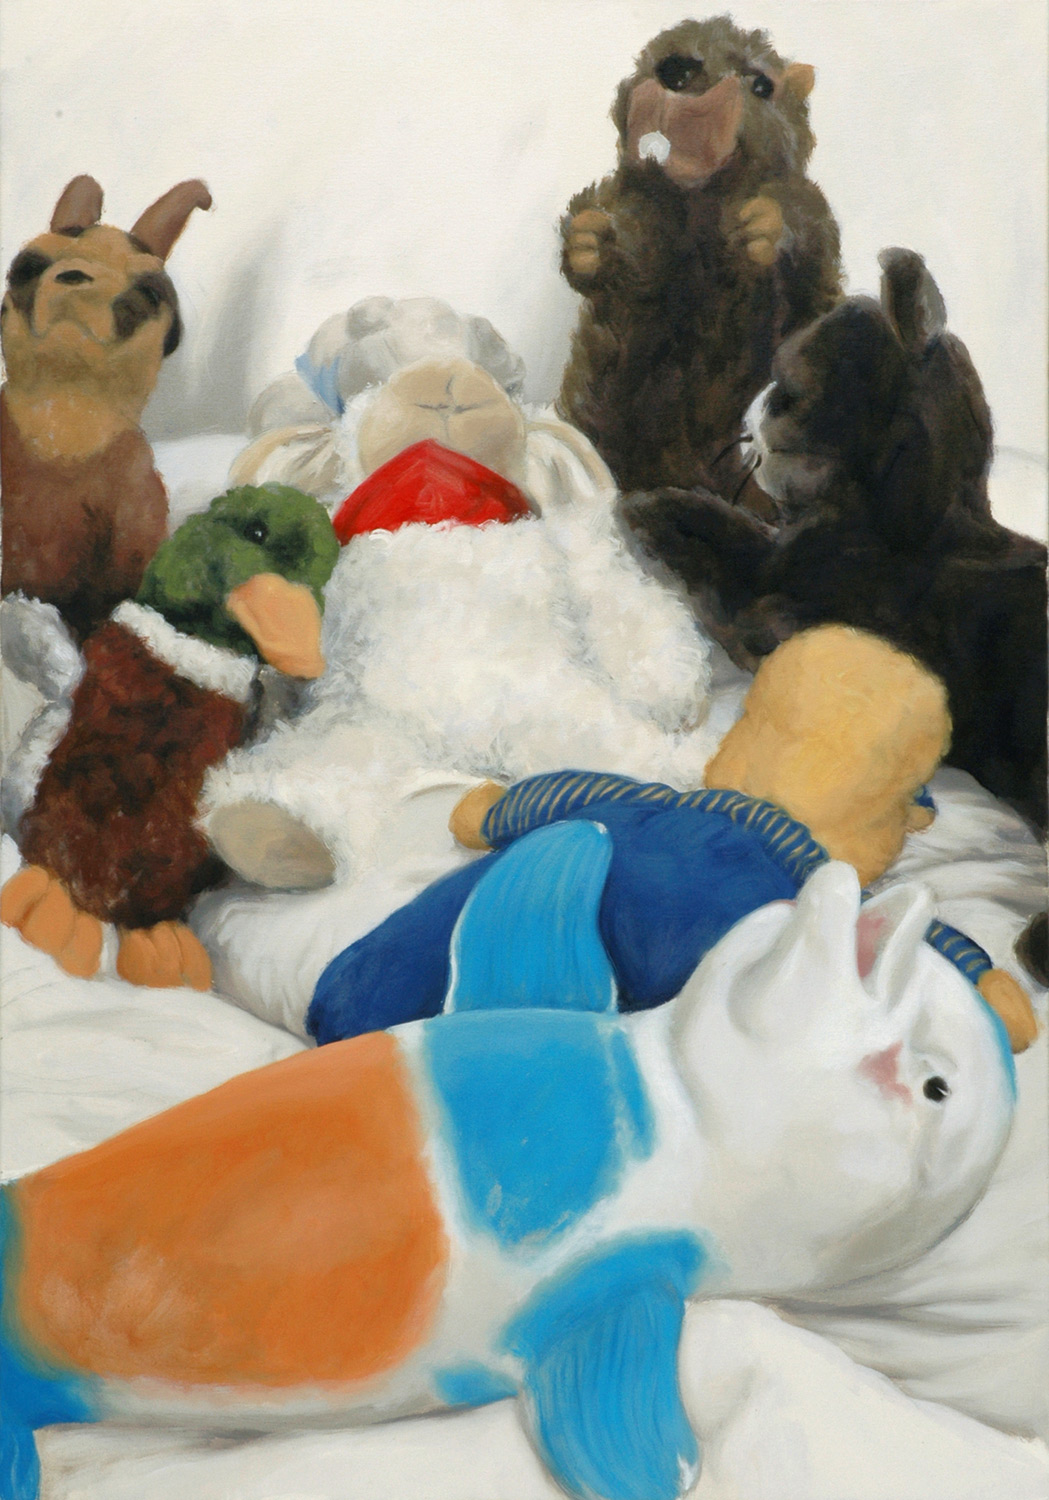 Martina Büttner: Painting, family #9, 2007